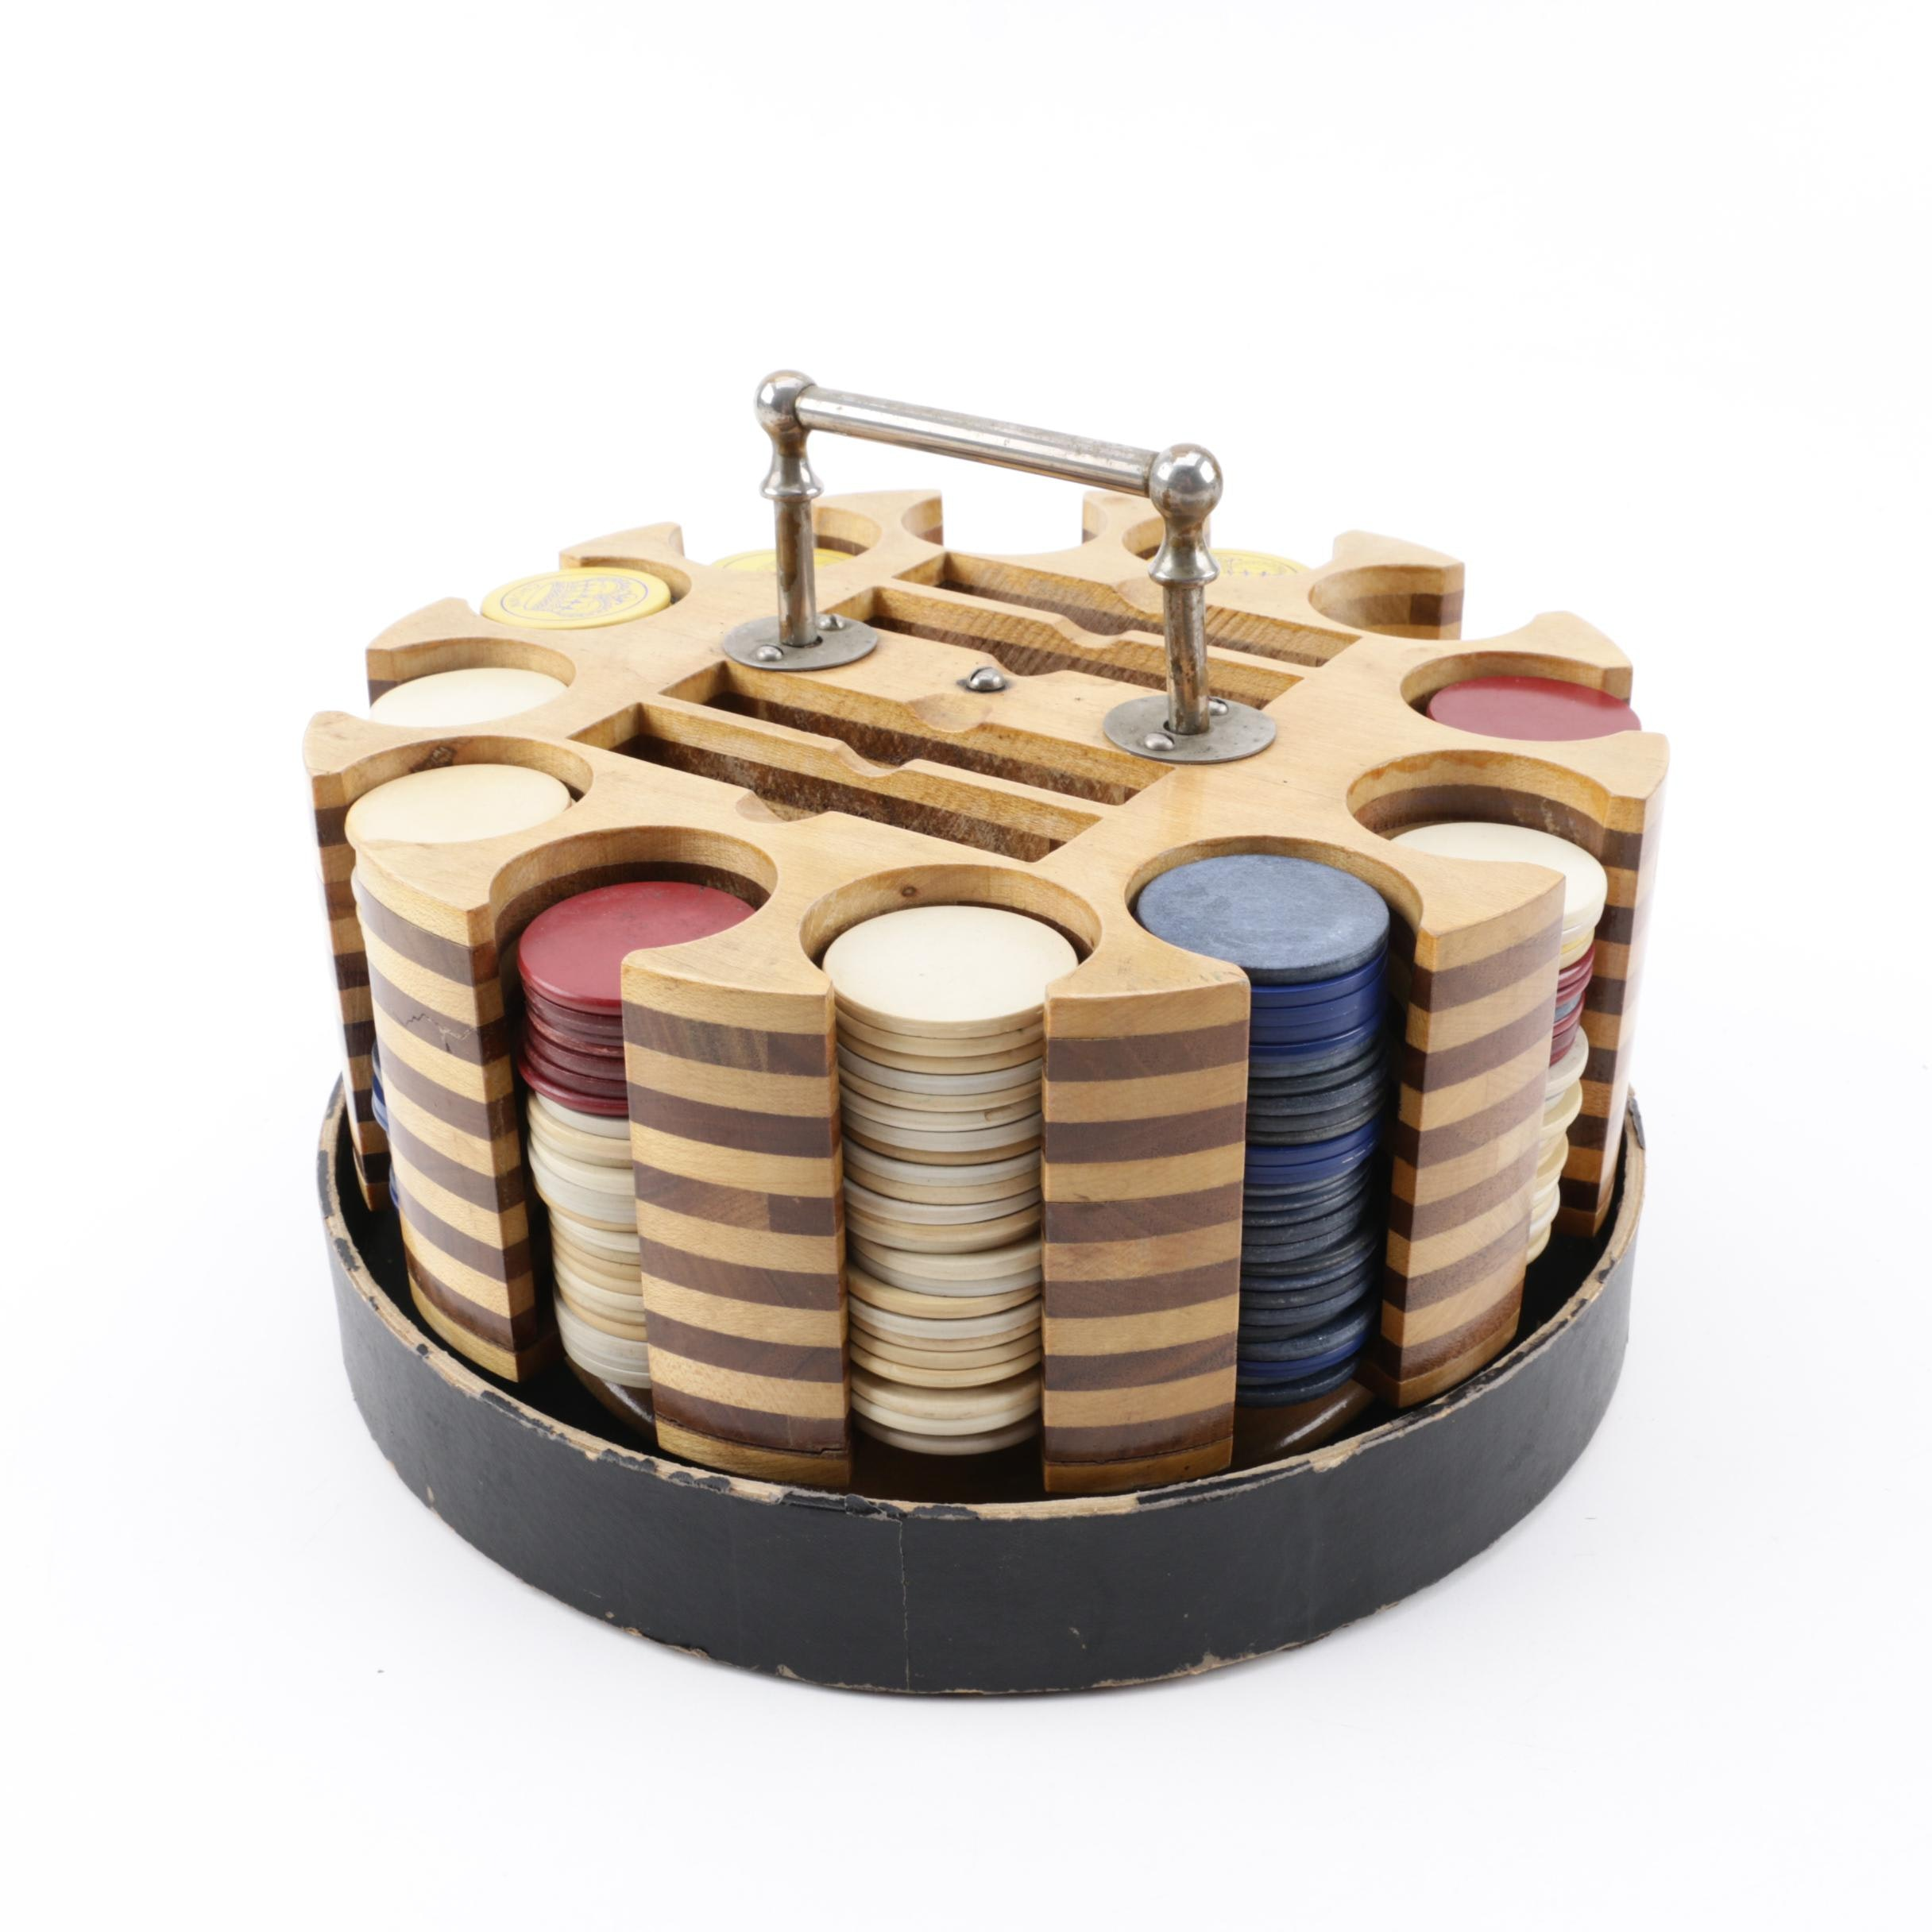 Wooden Poker Chip Carousel with Plastic Chips